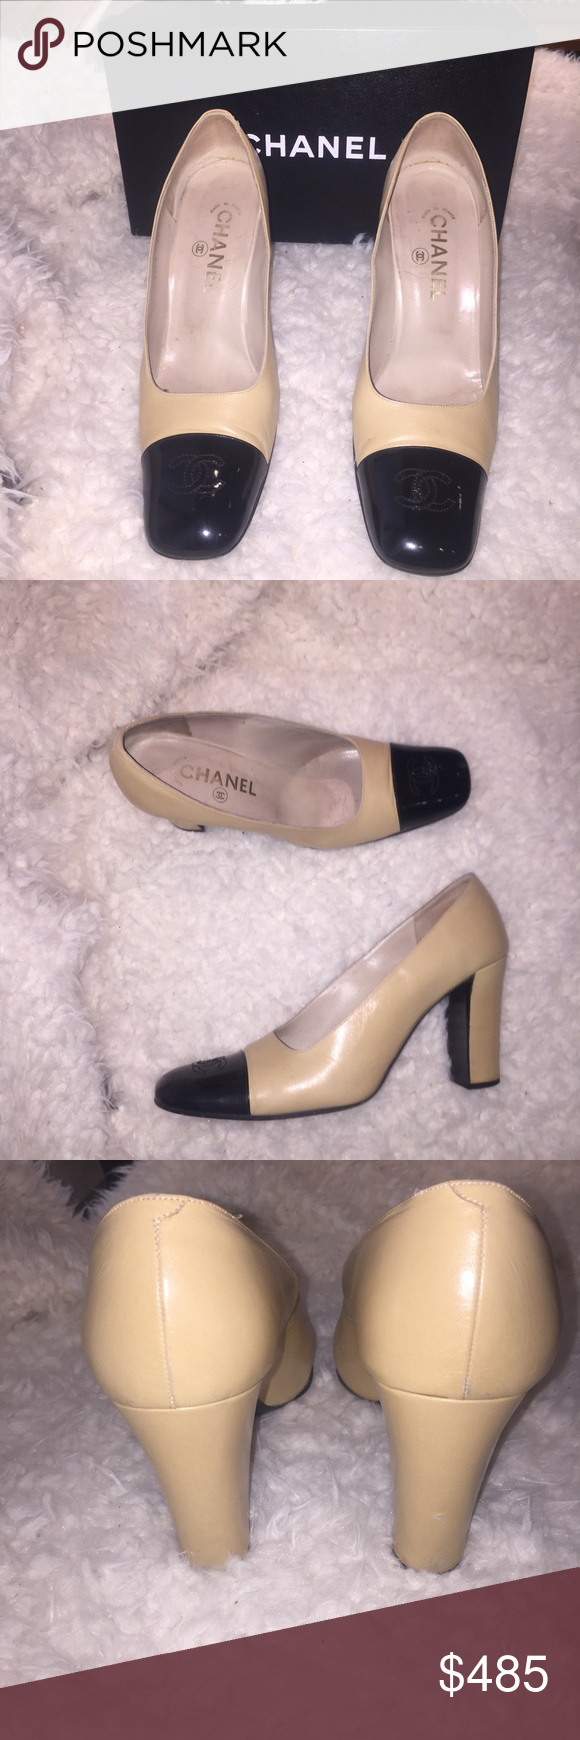 ab49a4a7ca0 ⭐SALE⭐Authentic Chanel two-tone pump Classic. Used but in very ...